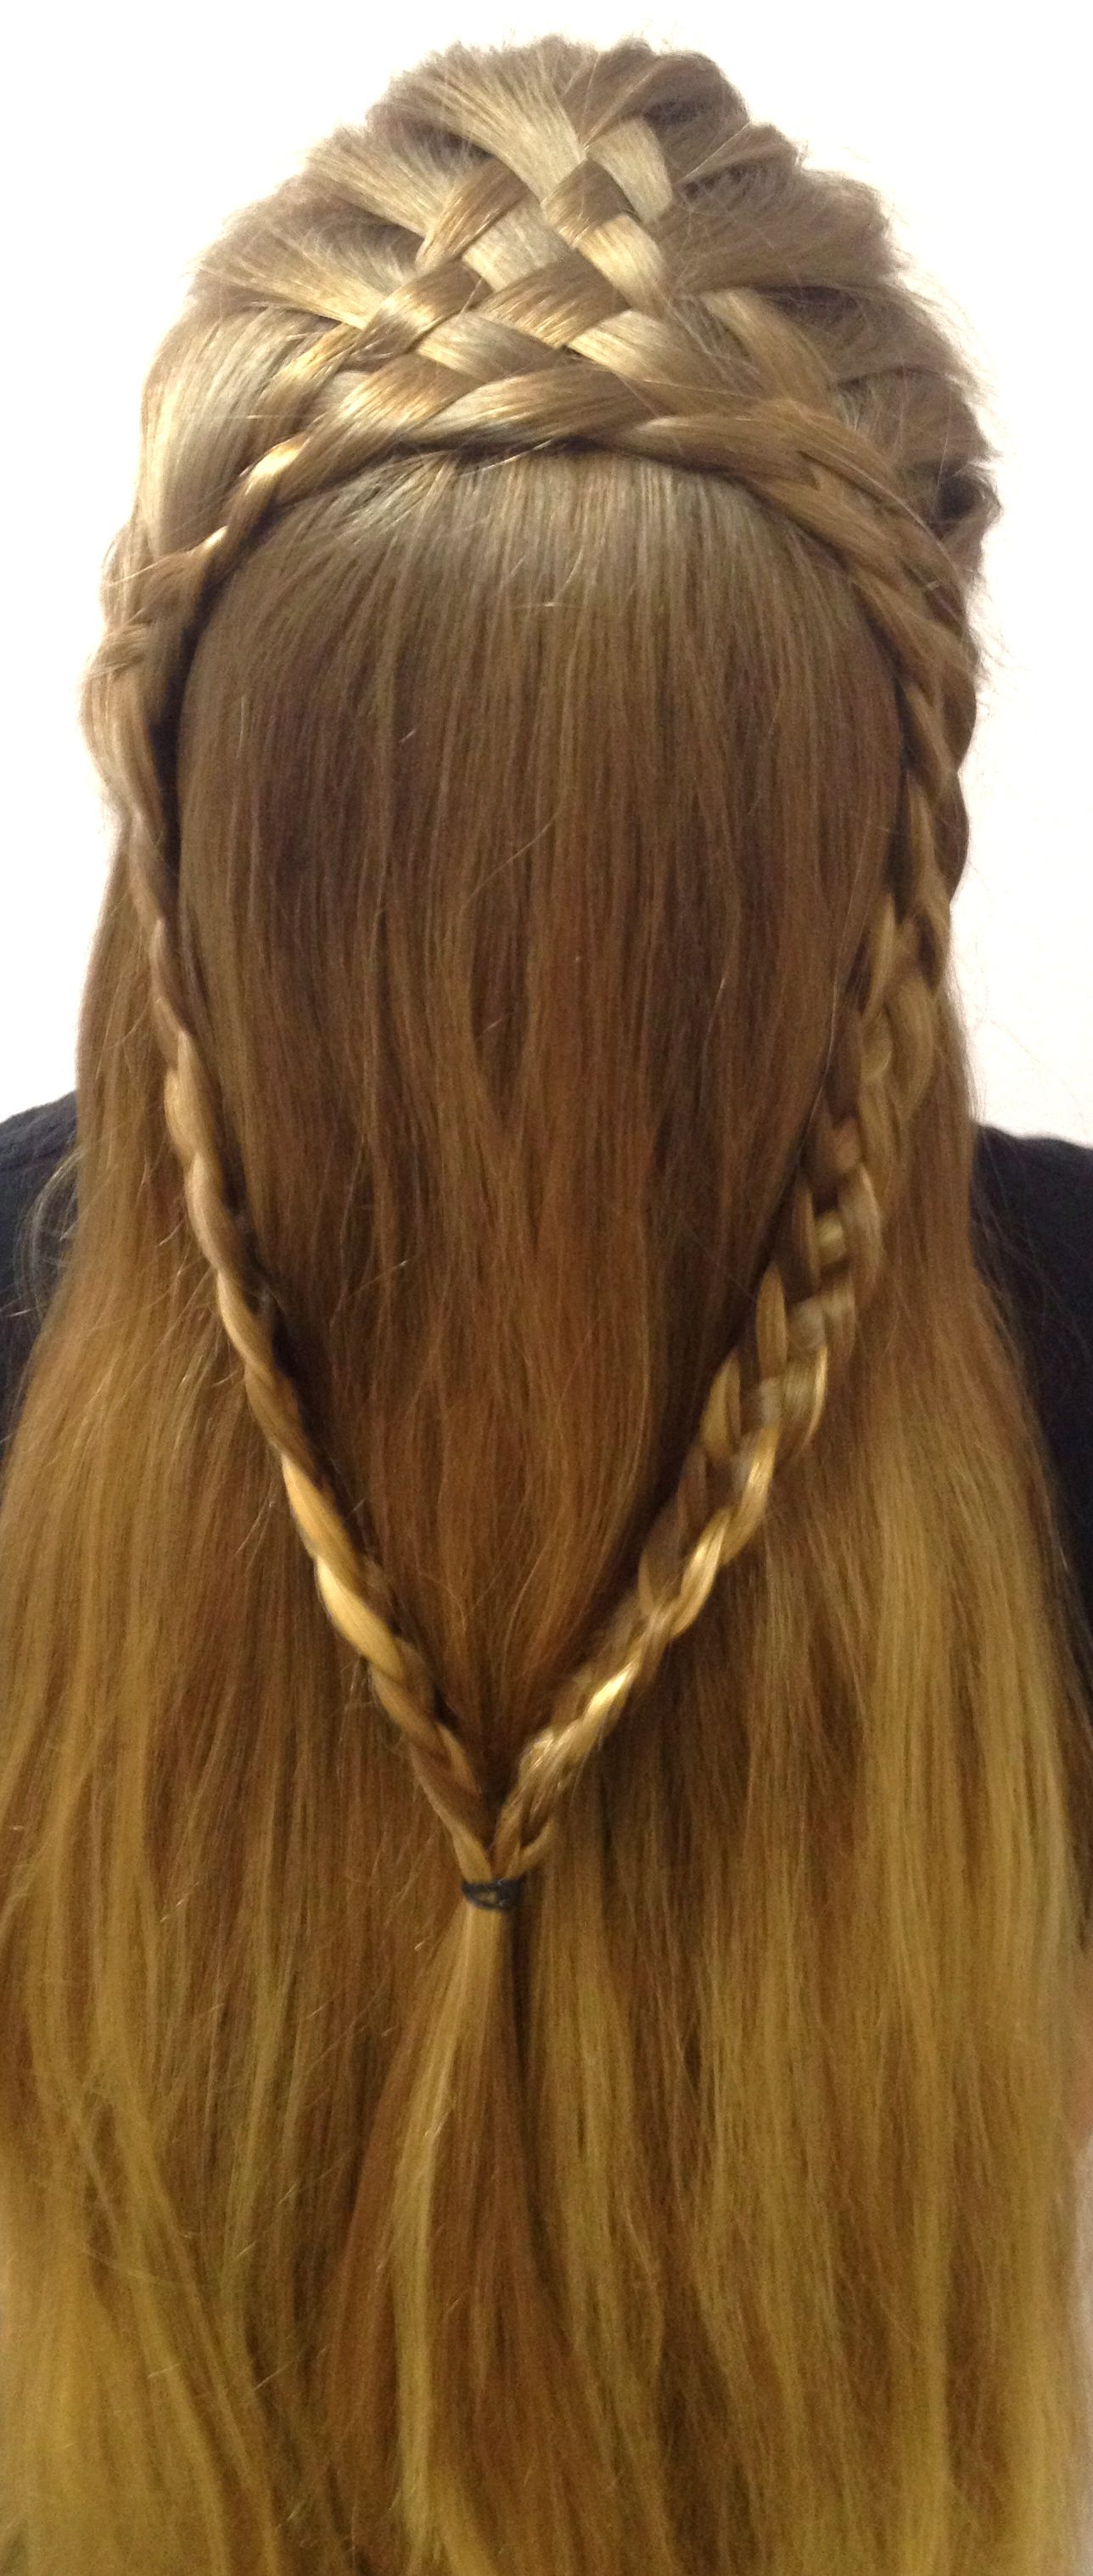 Braided Hairstyle 8 Strand French Braid Split Into Two 4 Strand